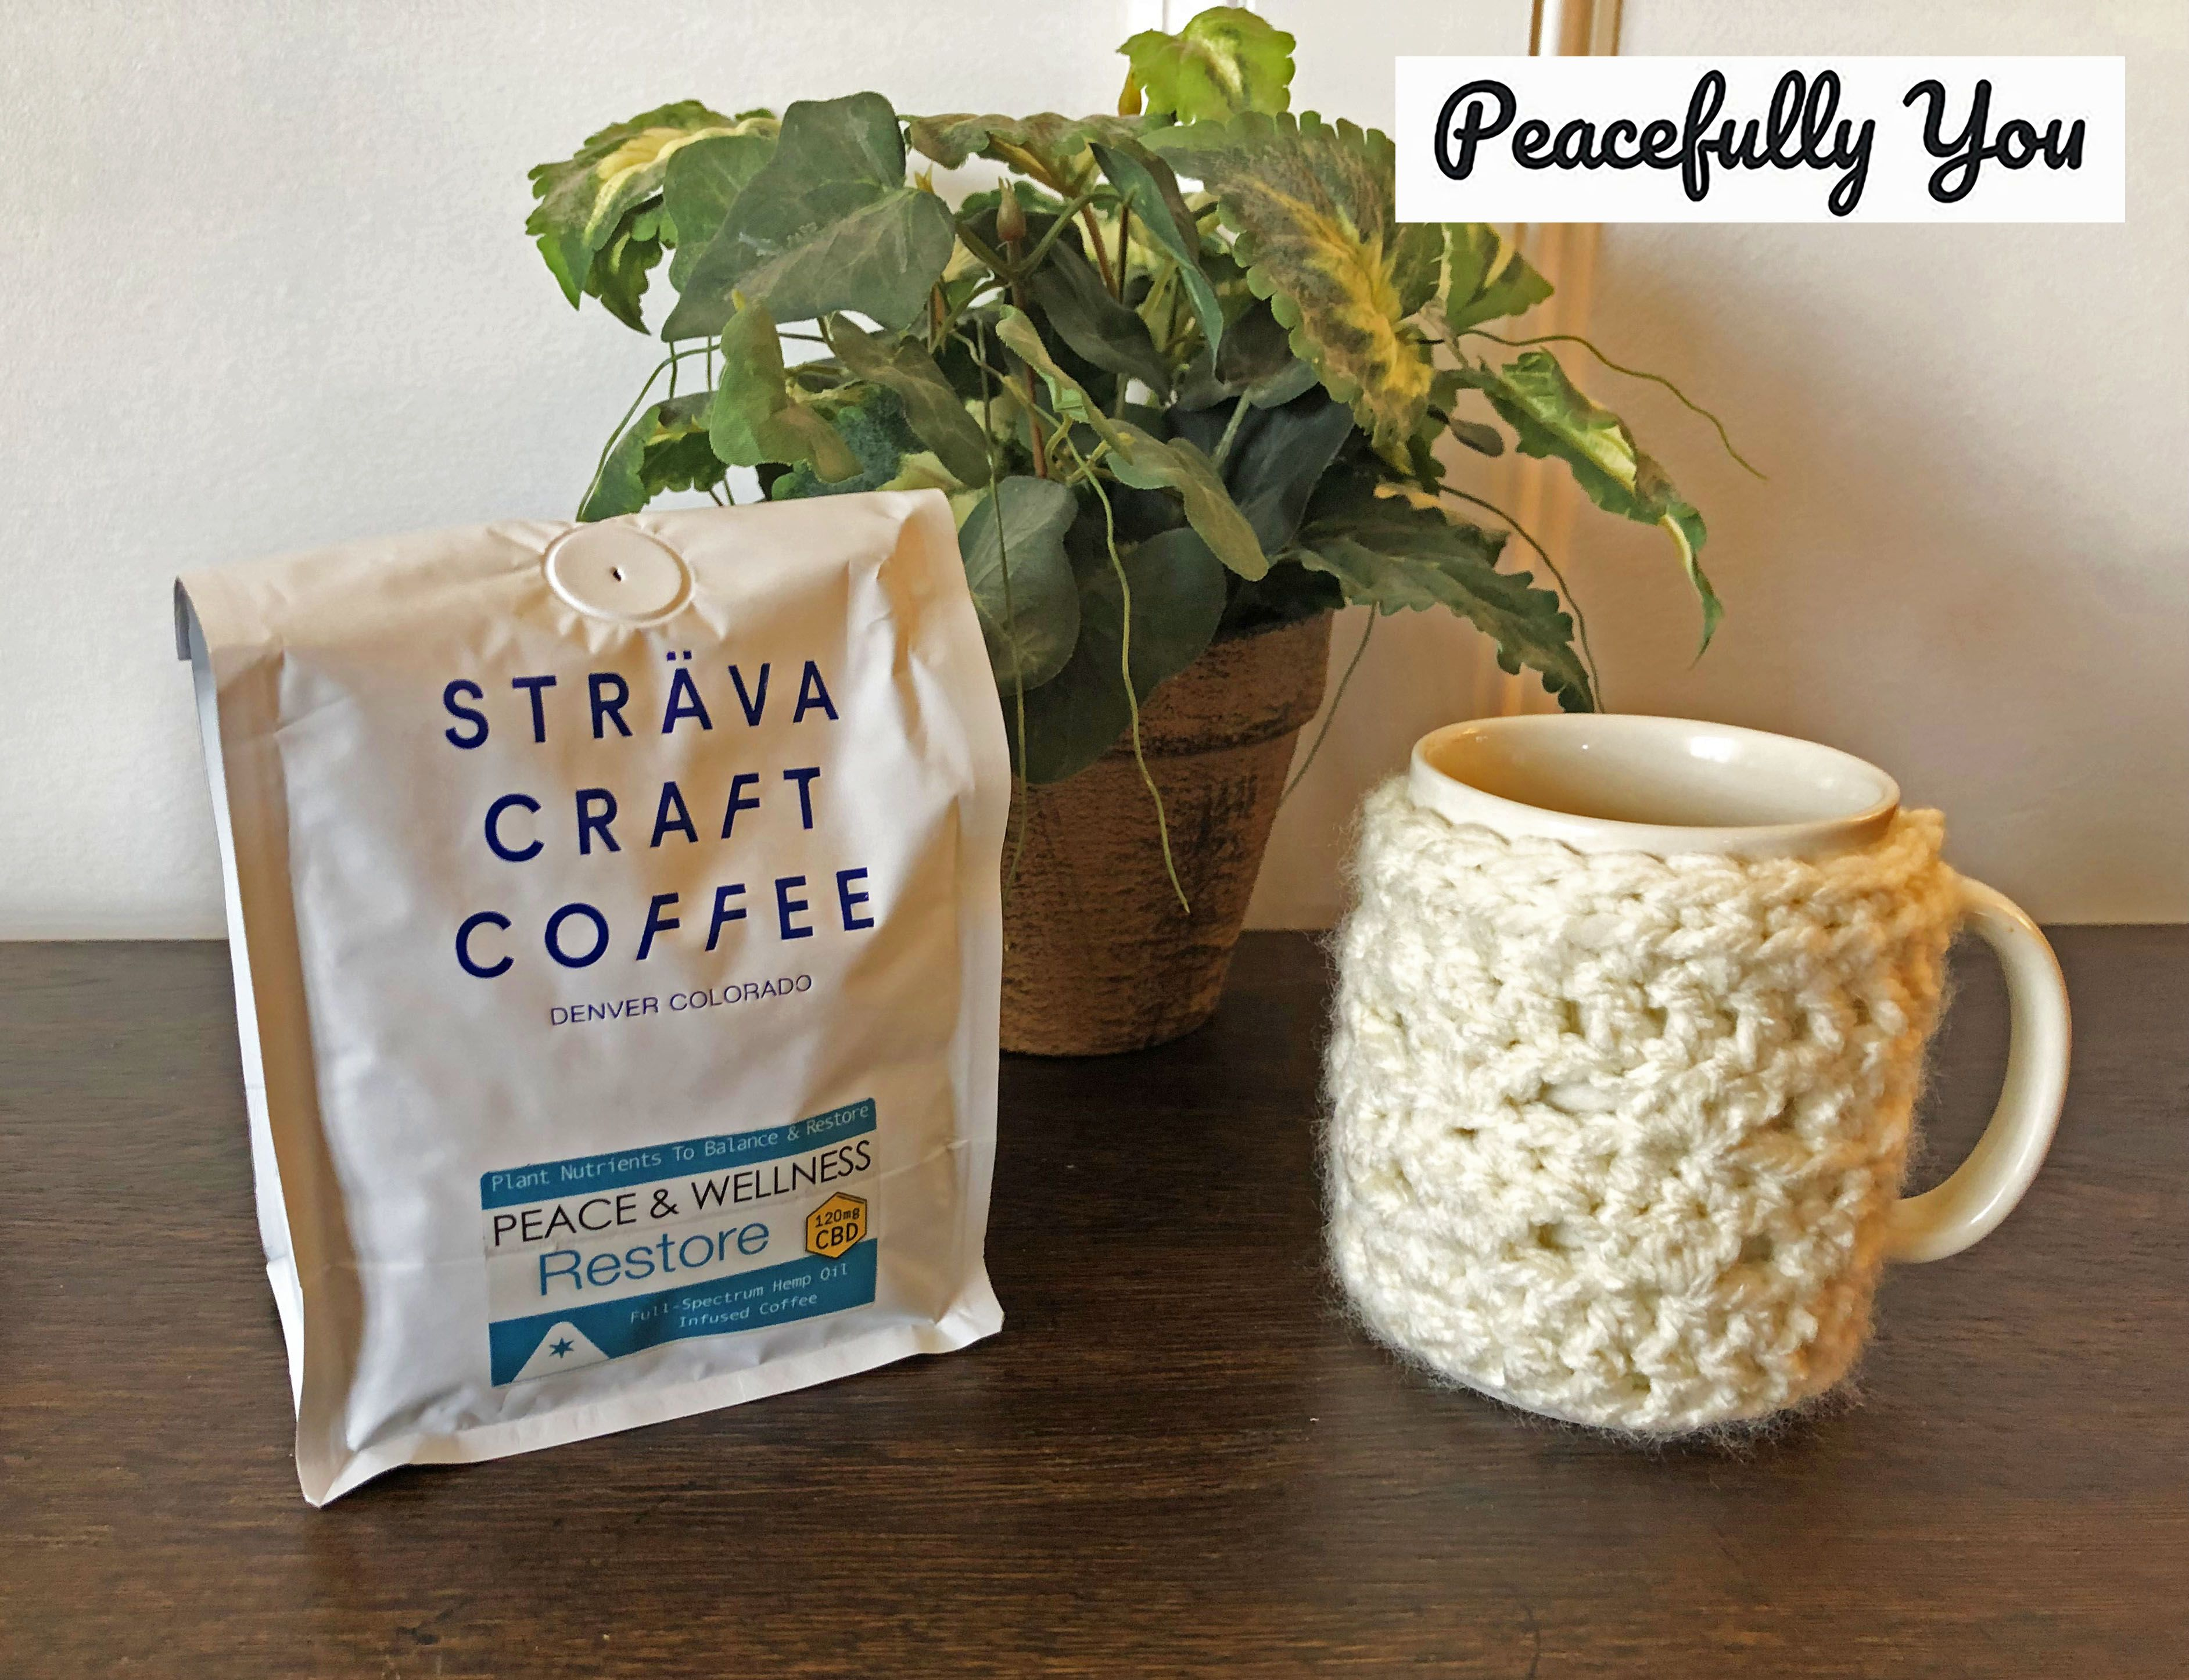 Enjoy A Cup Of Cbd Coffee From Peacefully You While Using One Of